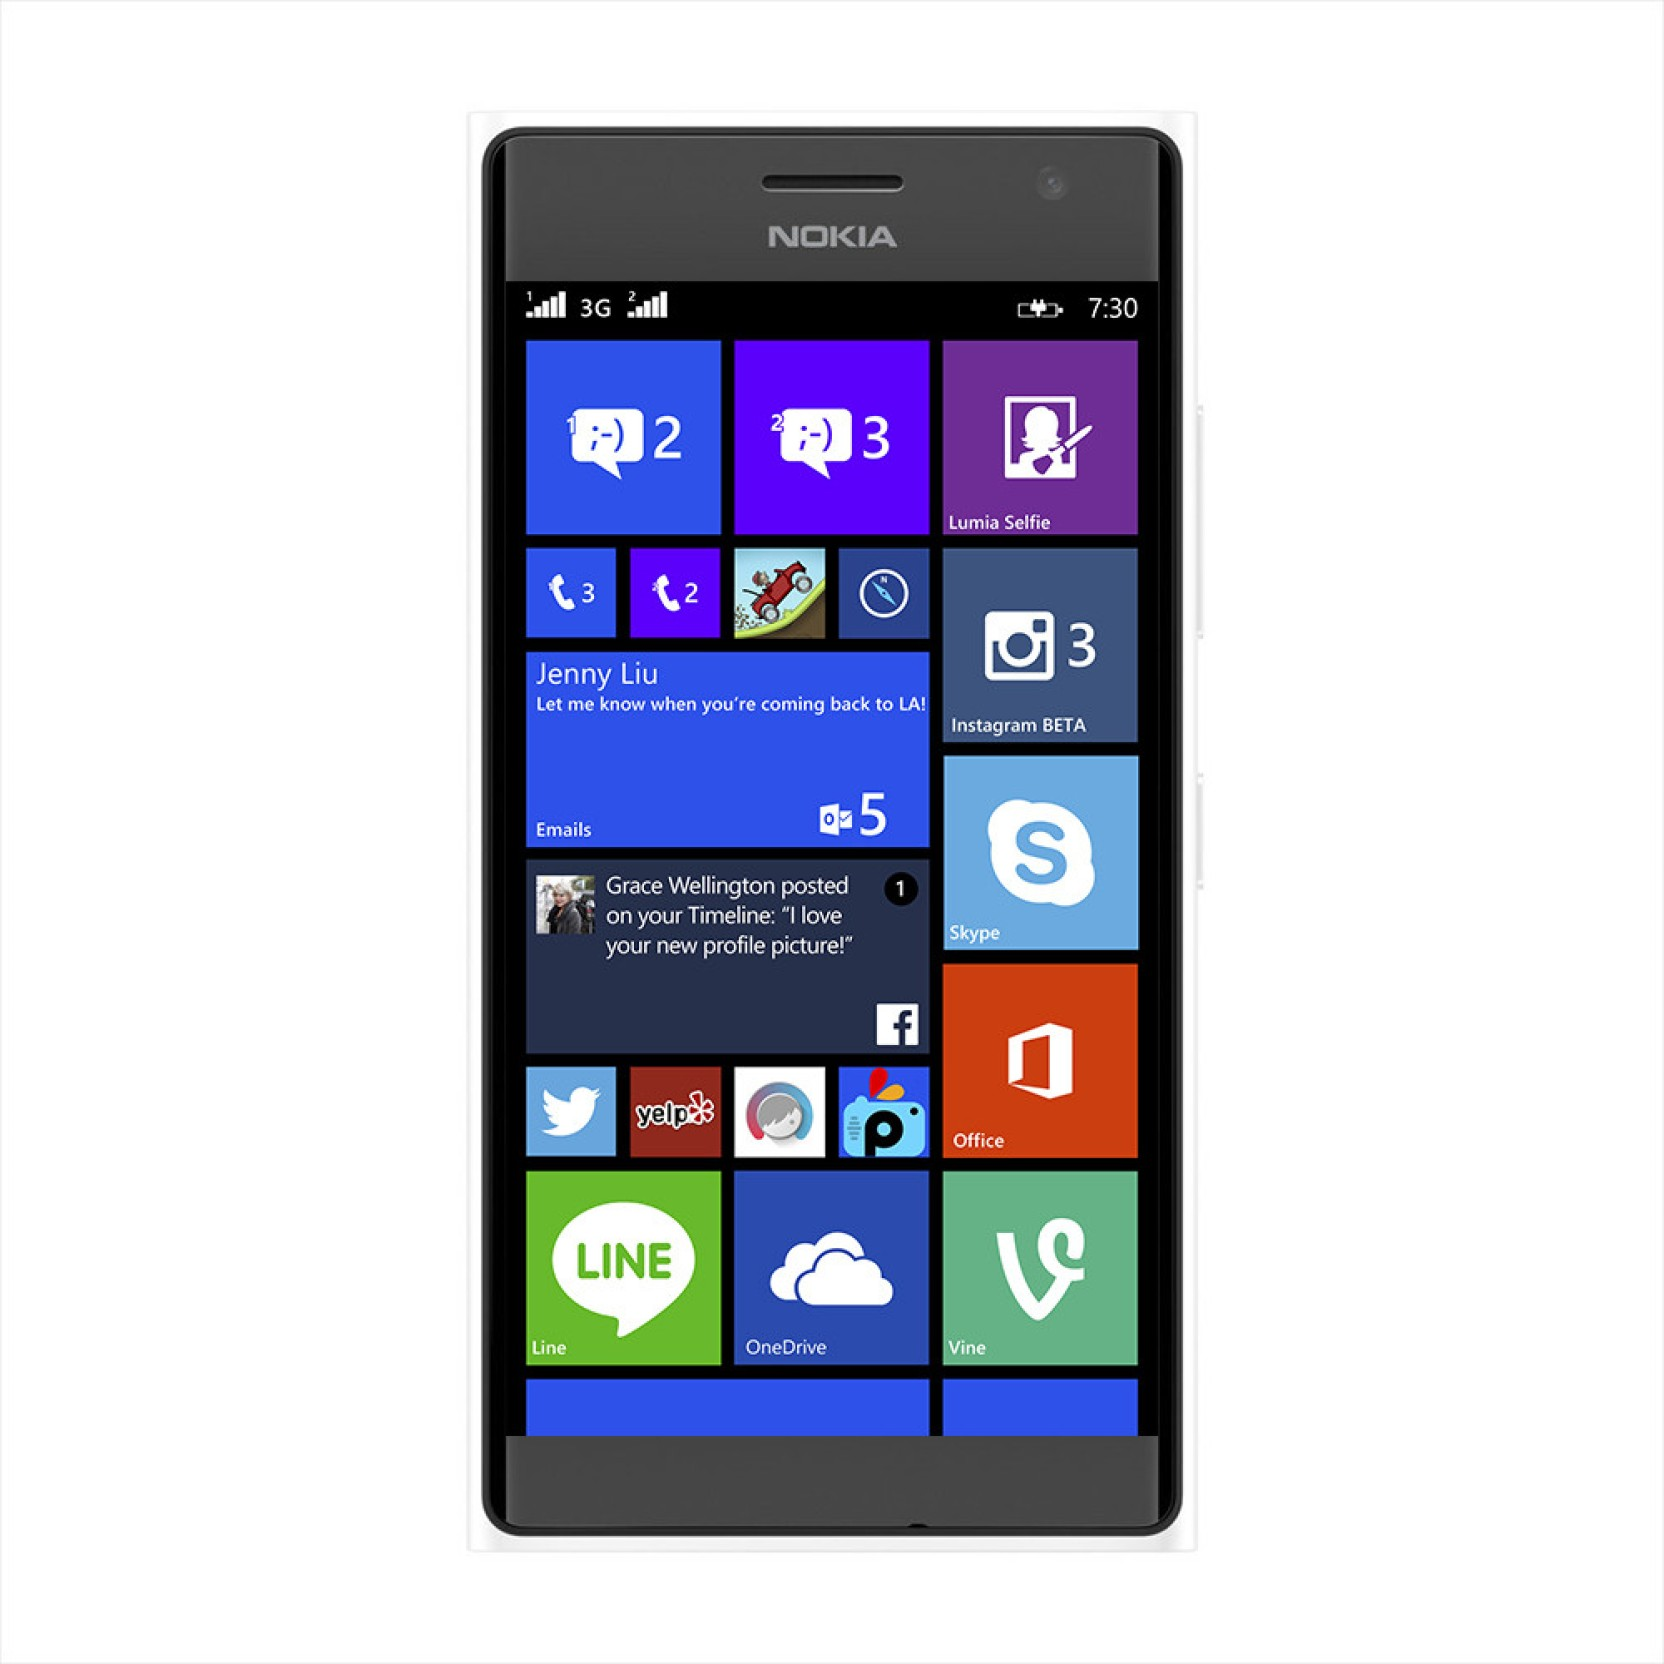 Nokia Lumia 730 (White, 8 GB) Online at Best Price with ...